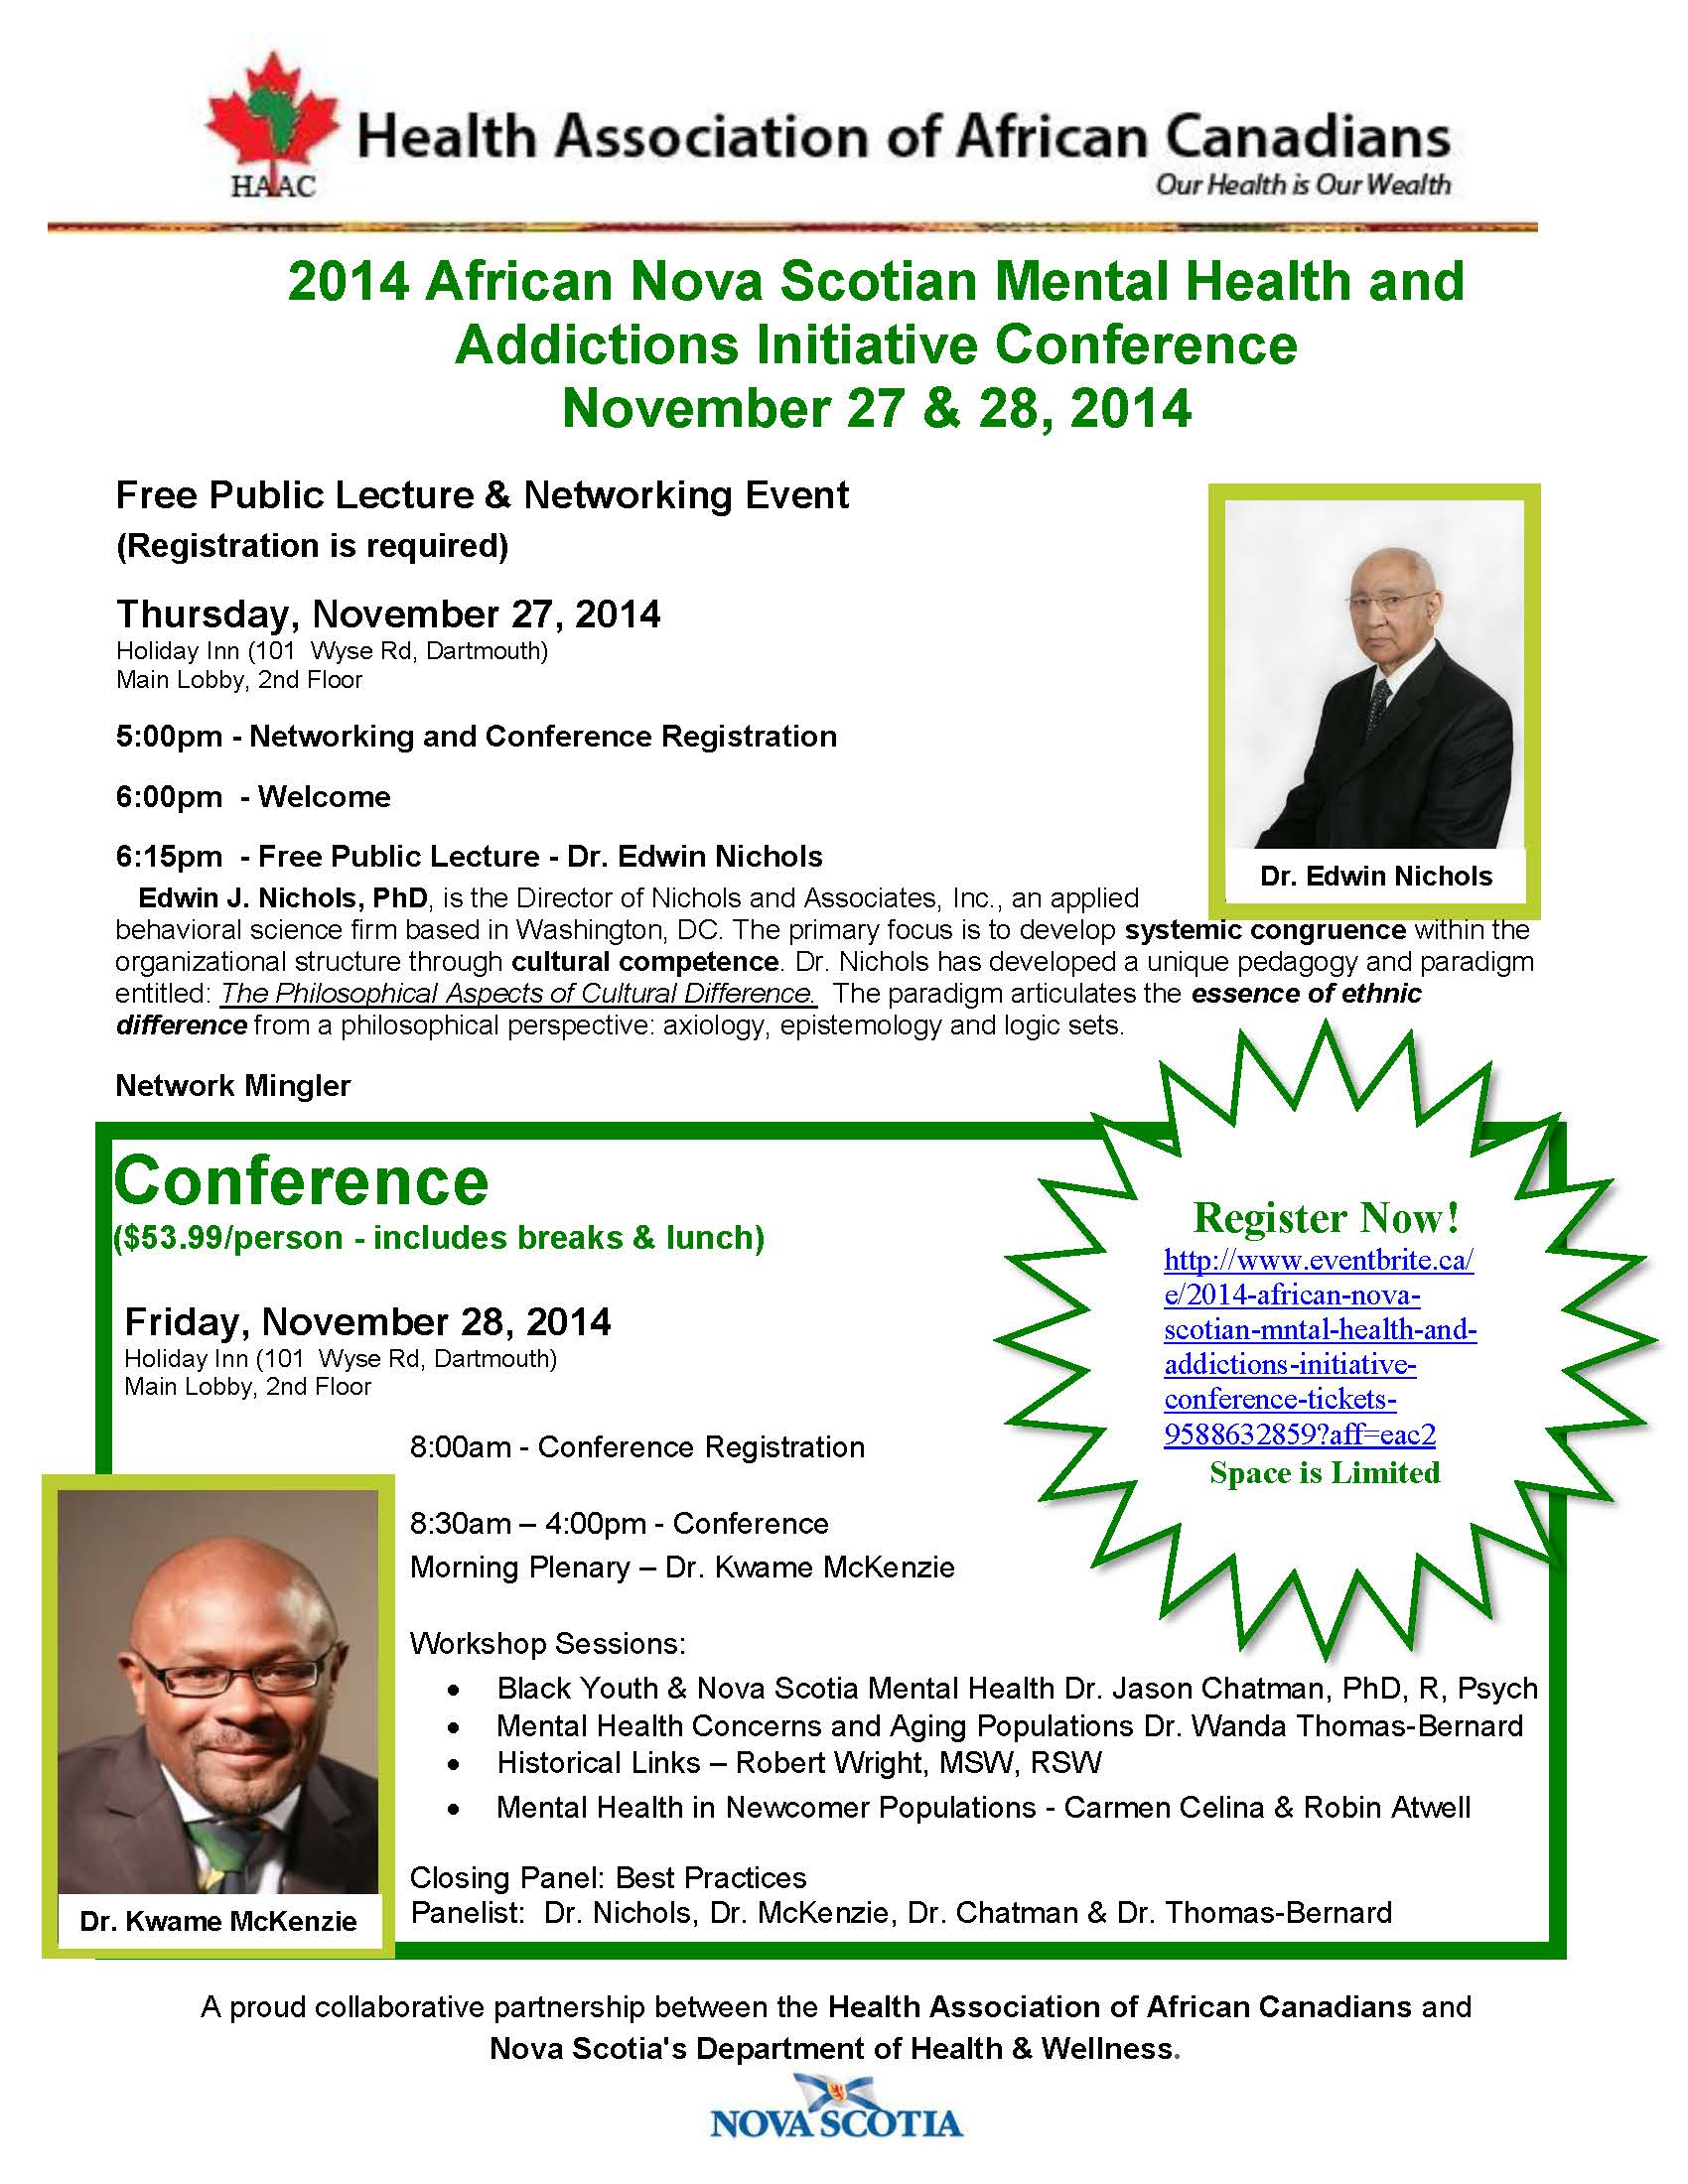 HAAC Conference flyer with speakers